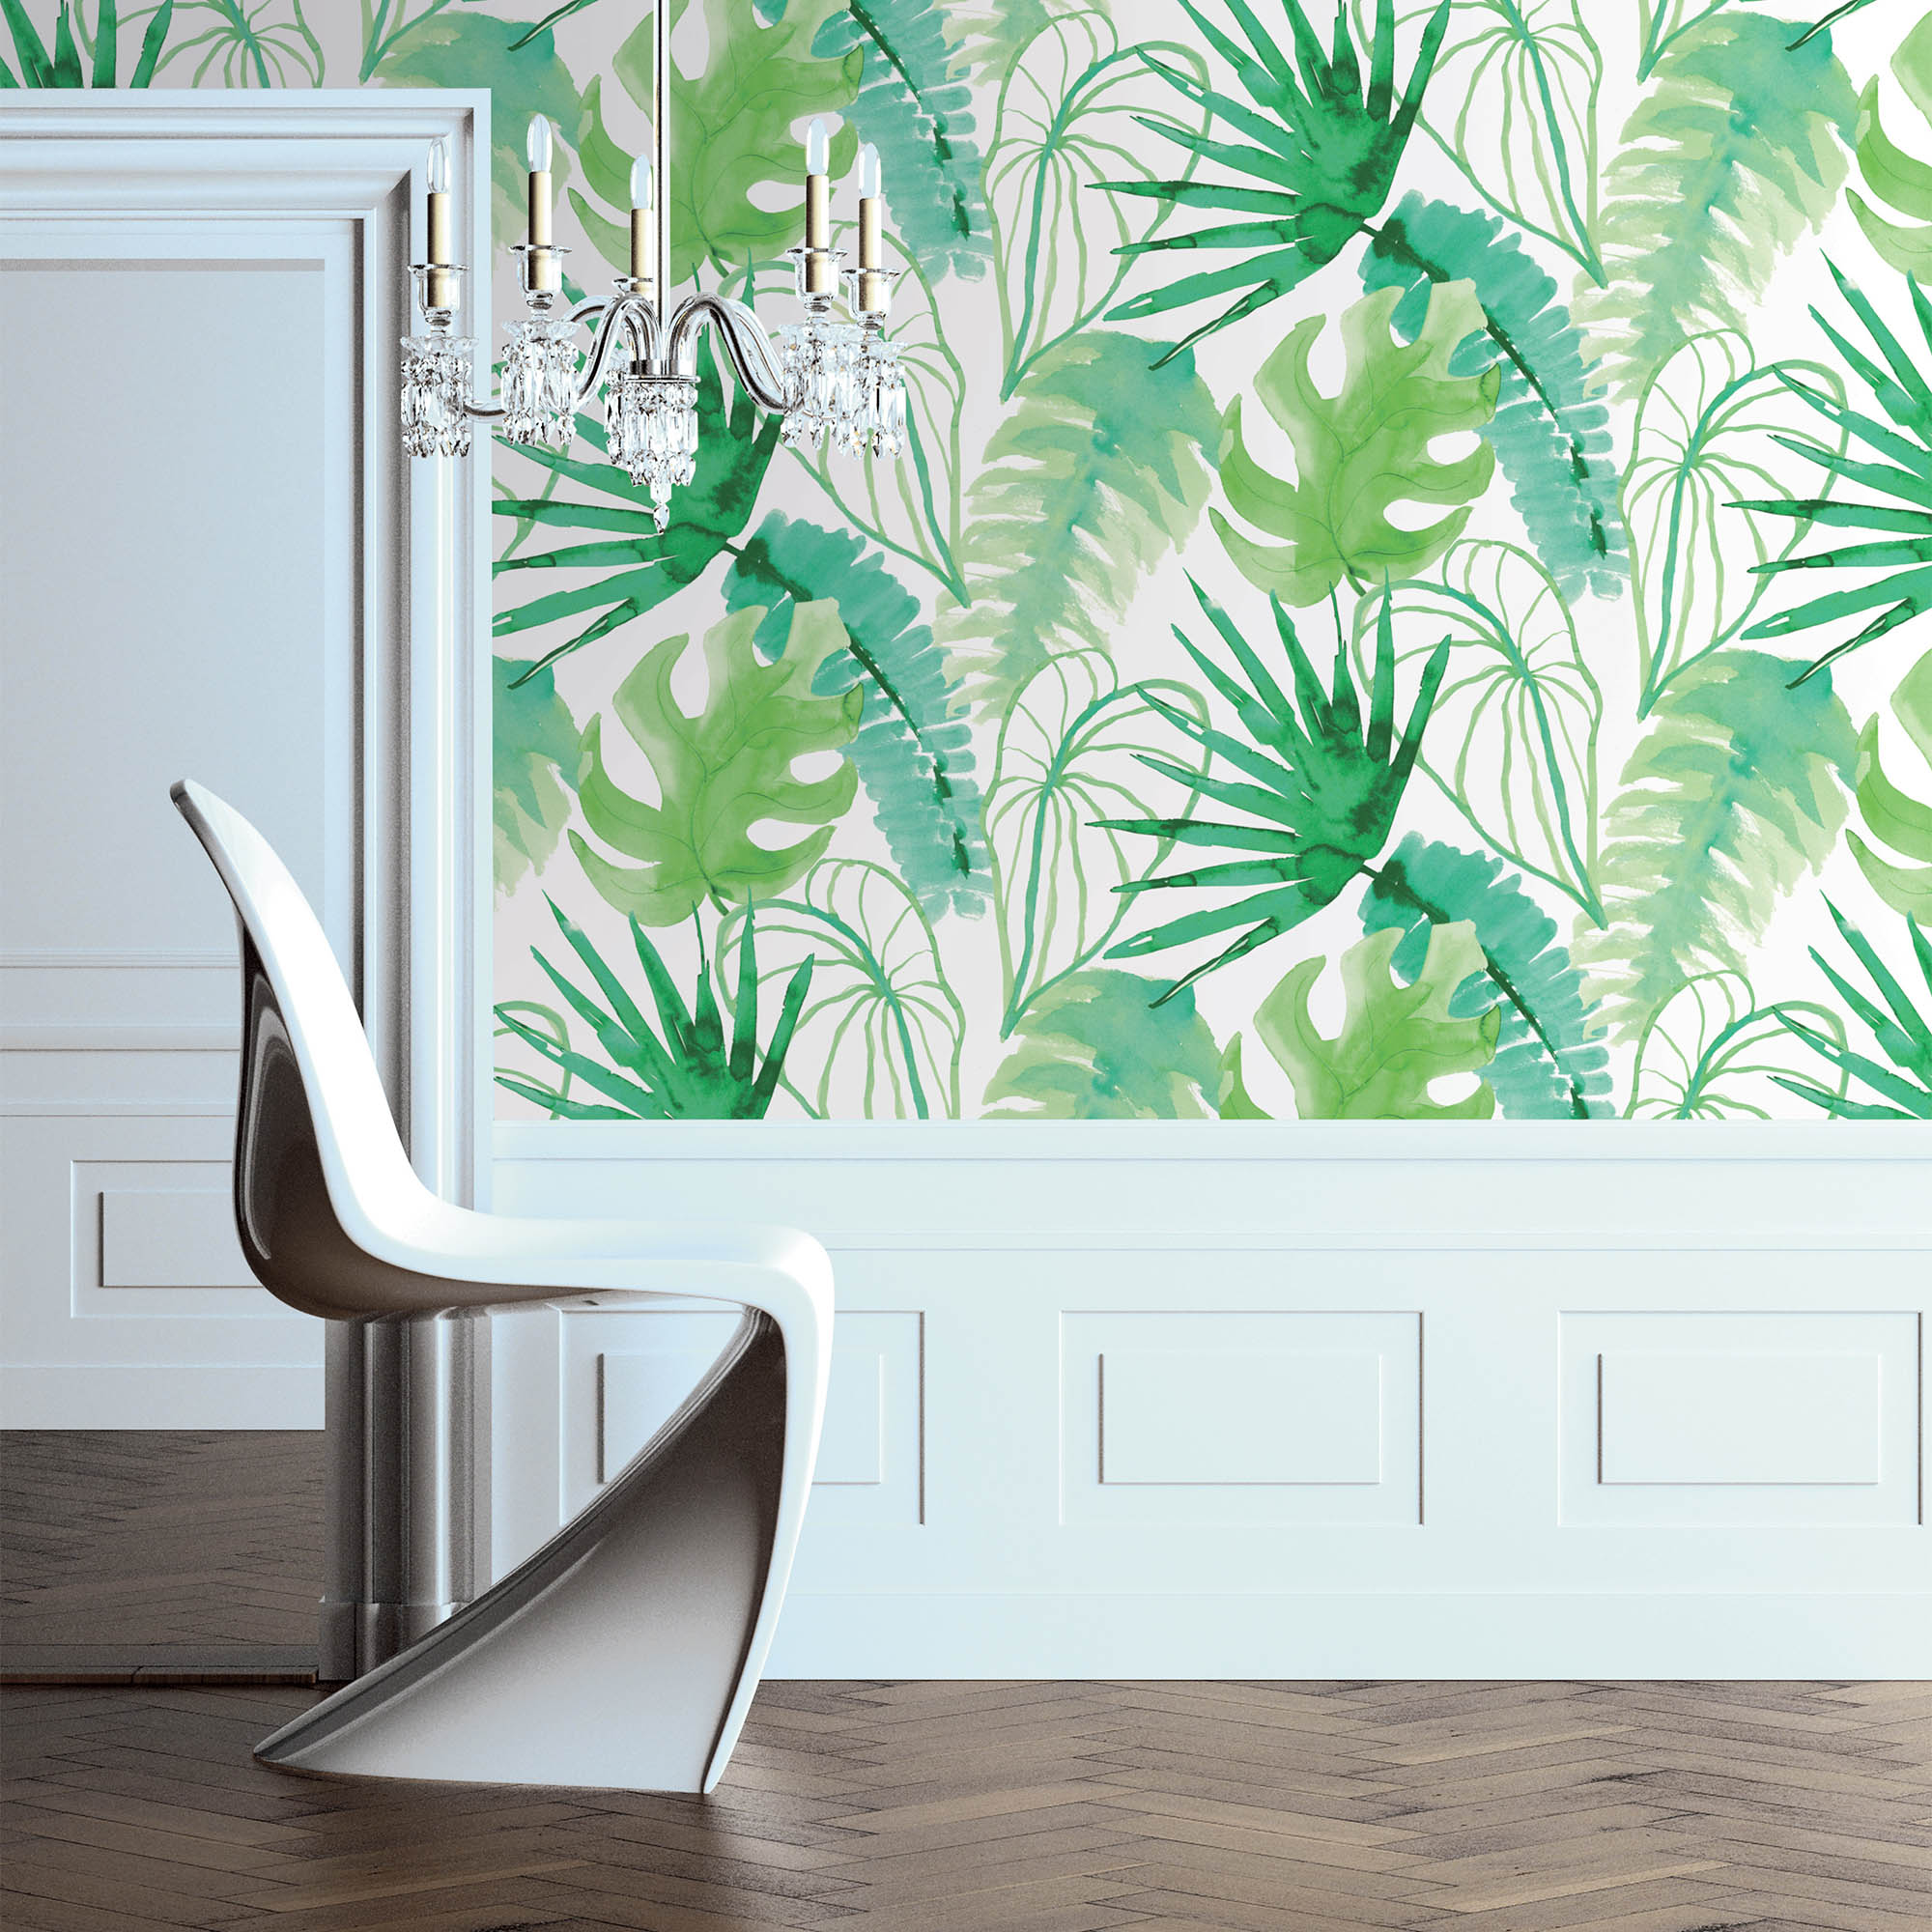 Jungle Fever Papier Peint La Redoute Holborn Blog Decoration Papier